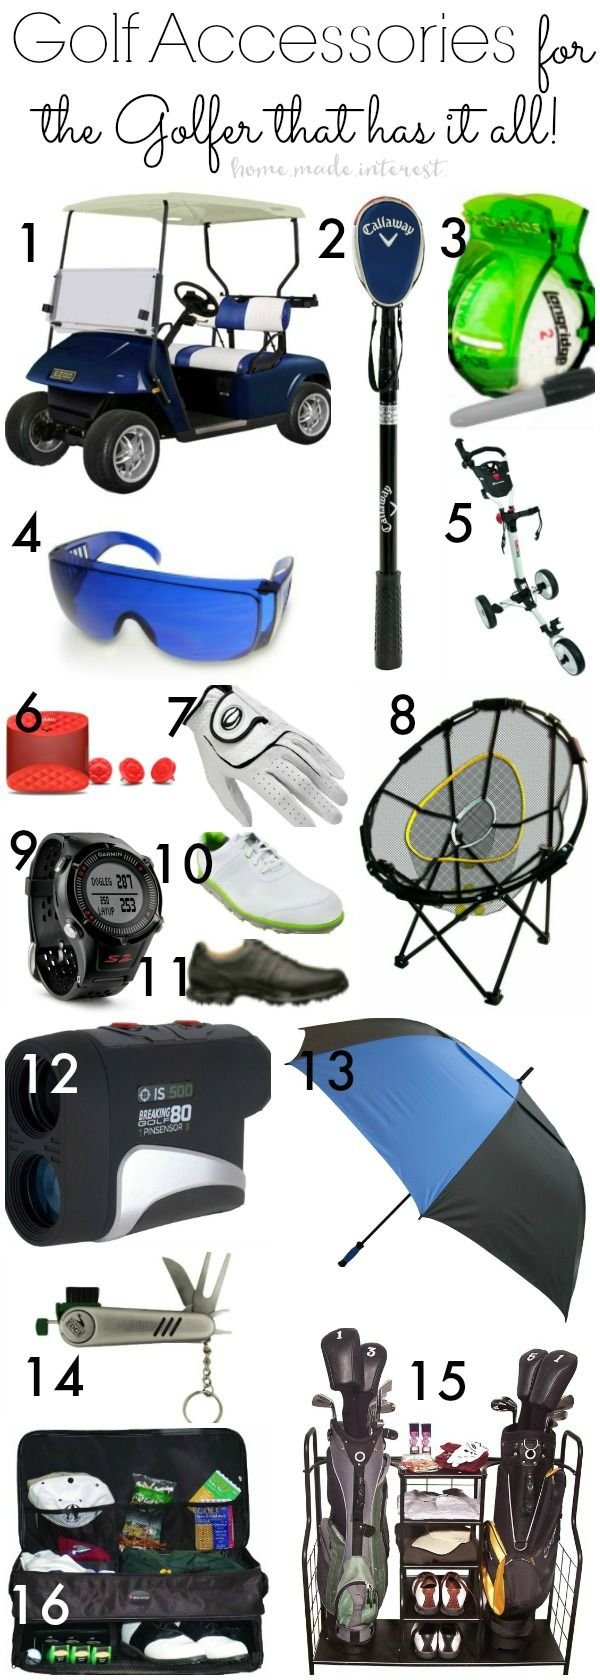 If you need Golf Accessories for the Golfer that has it all here's gift ideas for your boyfriend, dad, mom, men and women. Golf gifts for amateurs to professionals.